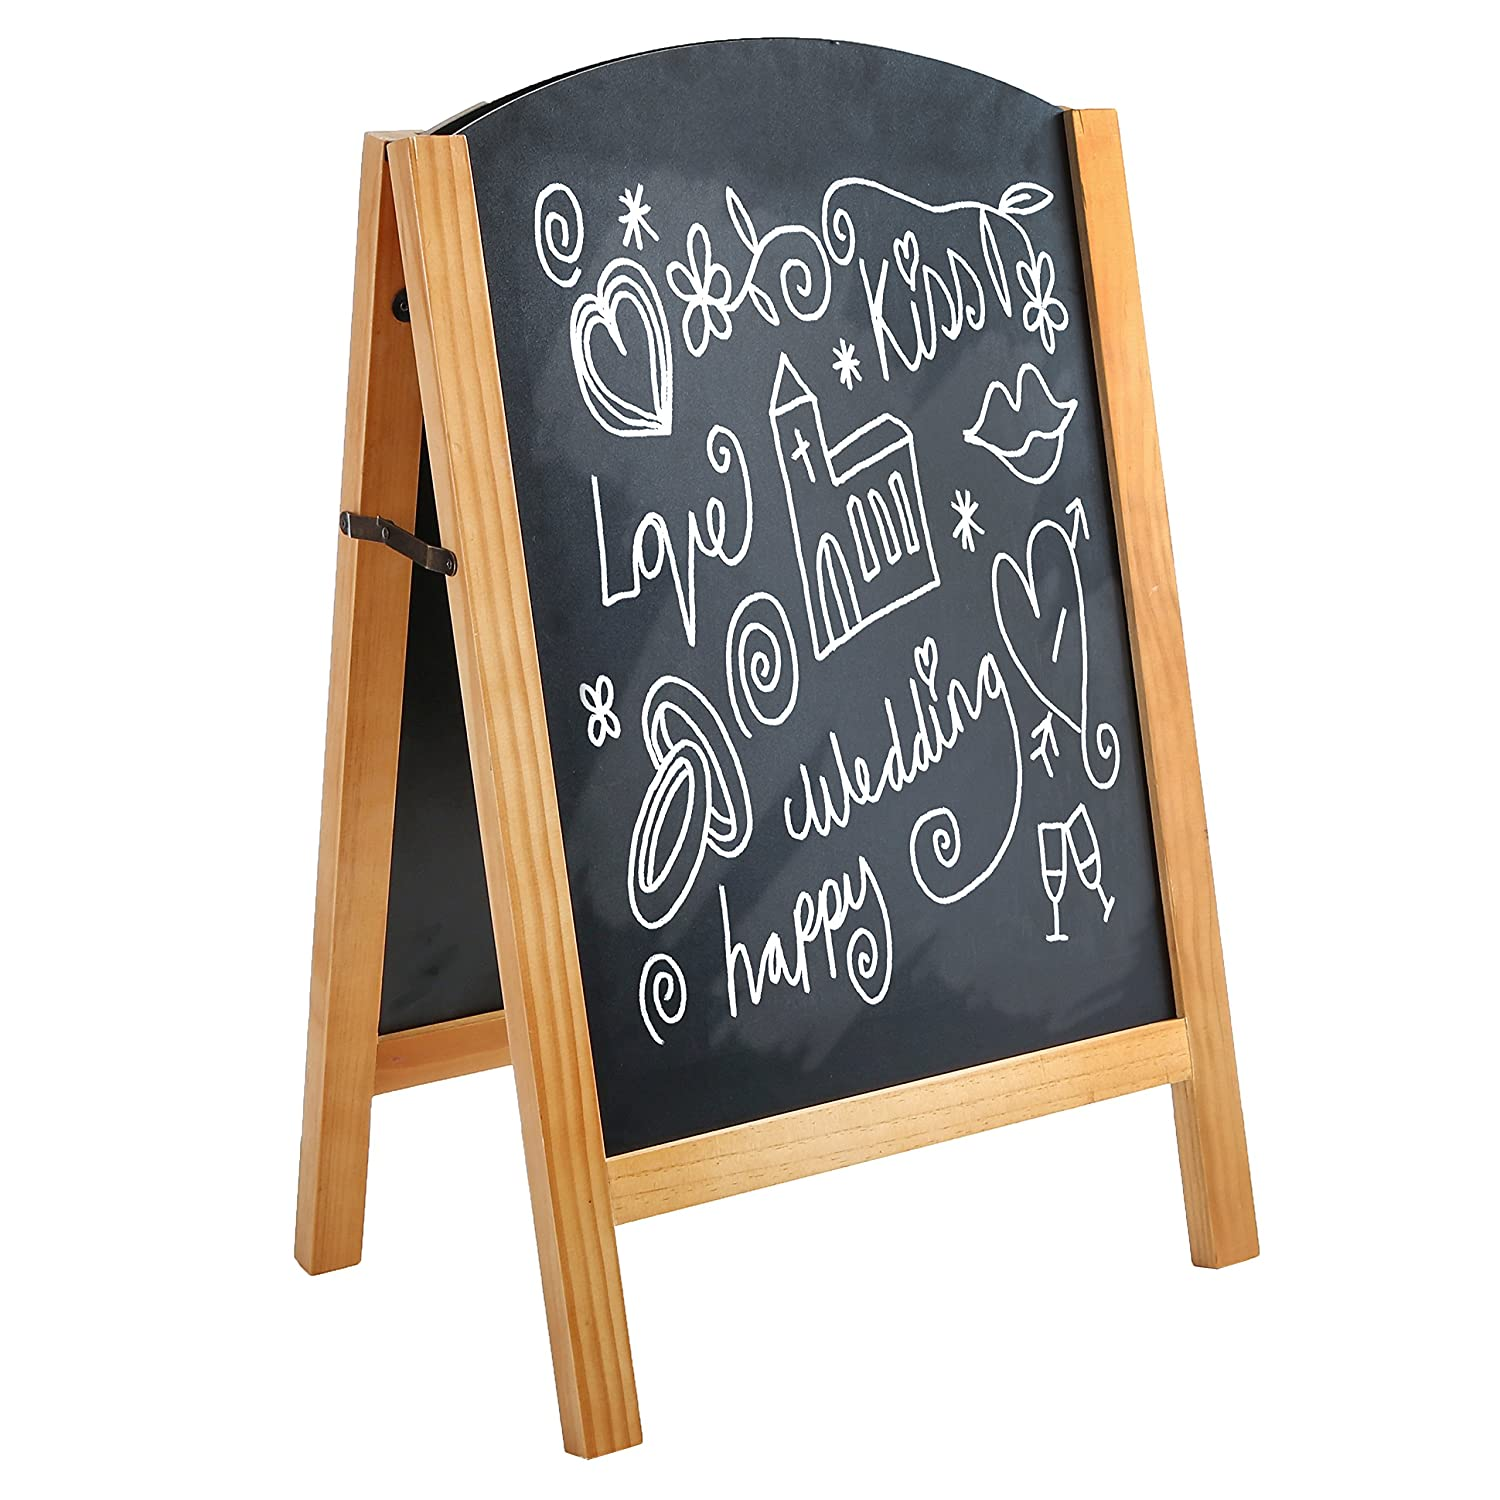 Freestanding A-Frame Chalkboard Display Sign, Double Sided Message Board